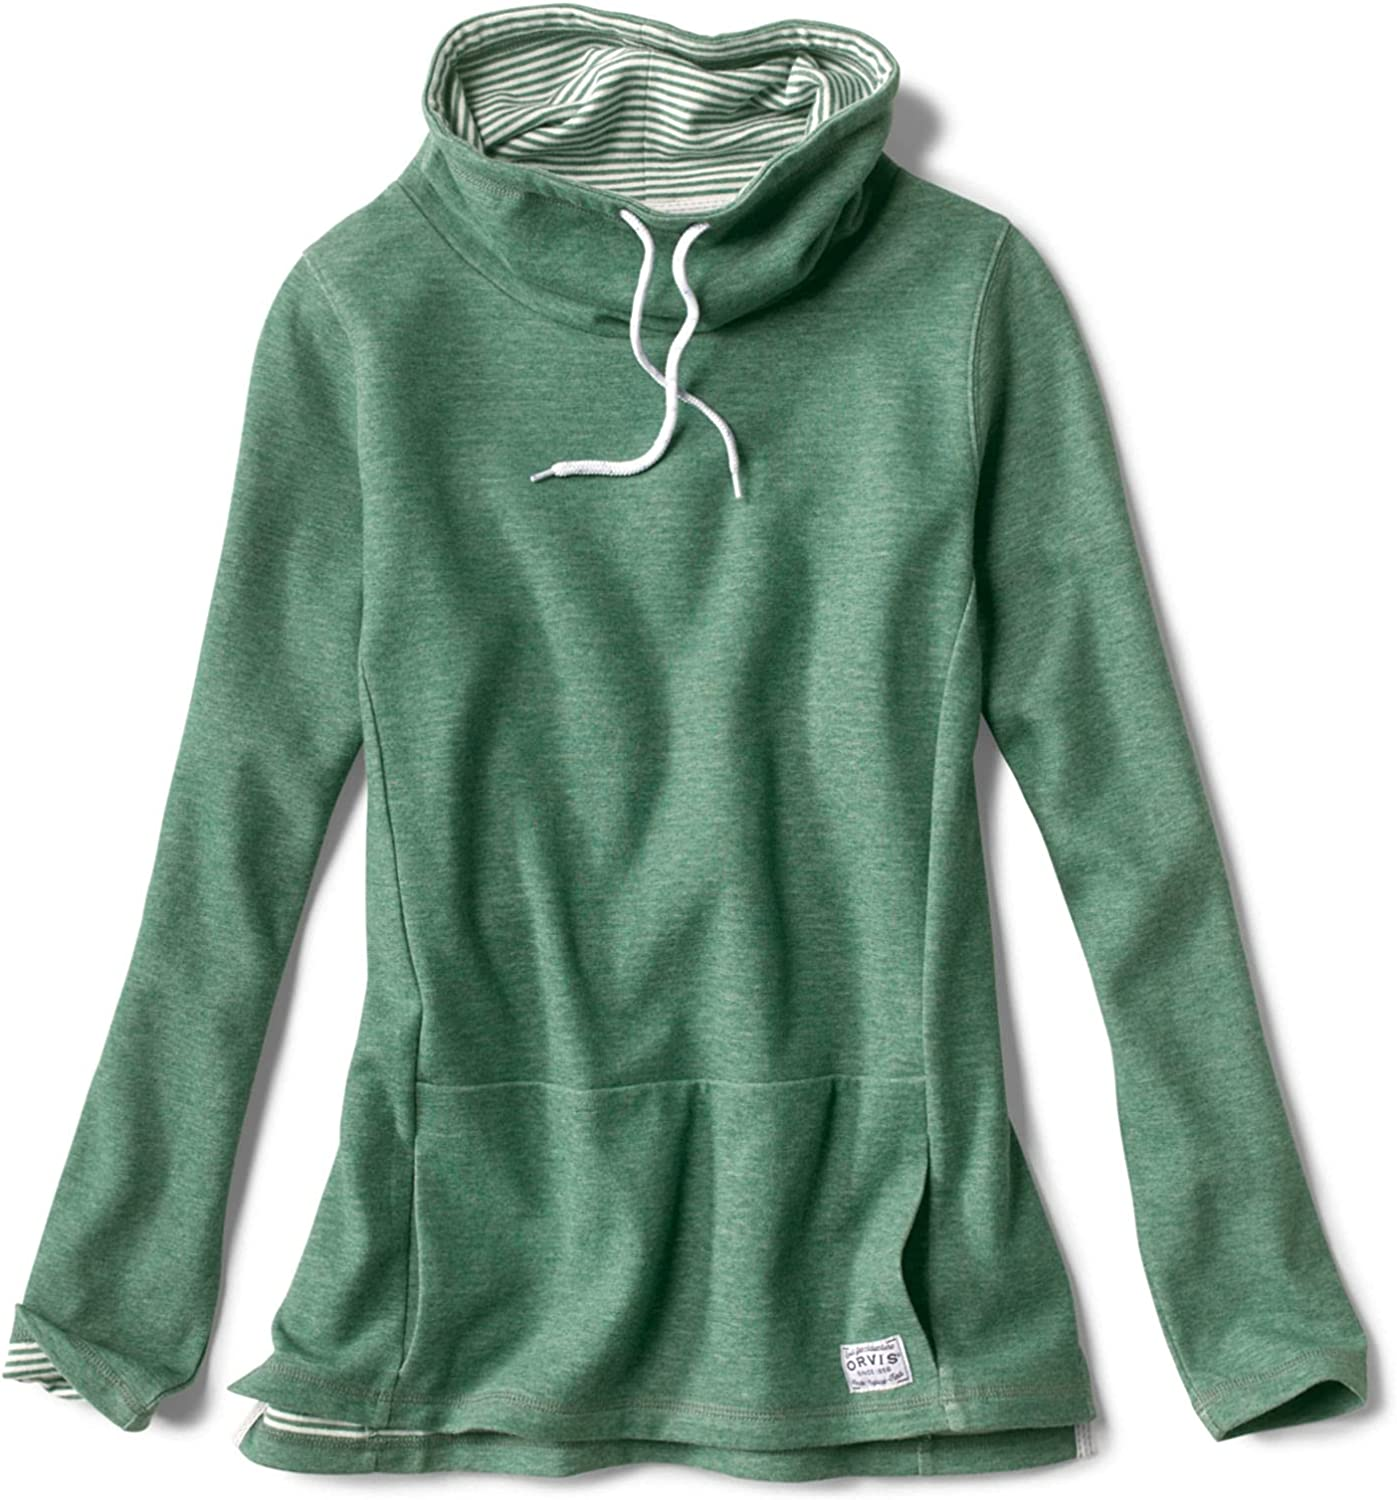 Tampa Mall Orvis Women's Recommendation The Journey Cowlneck Sweatshirt